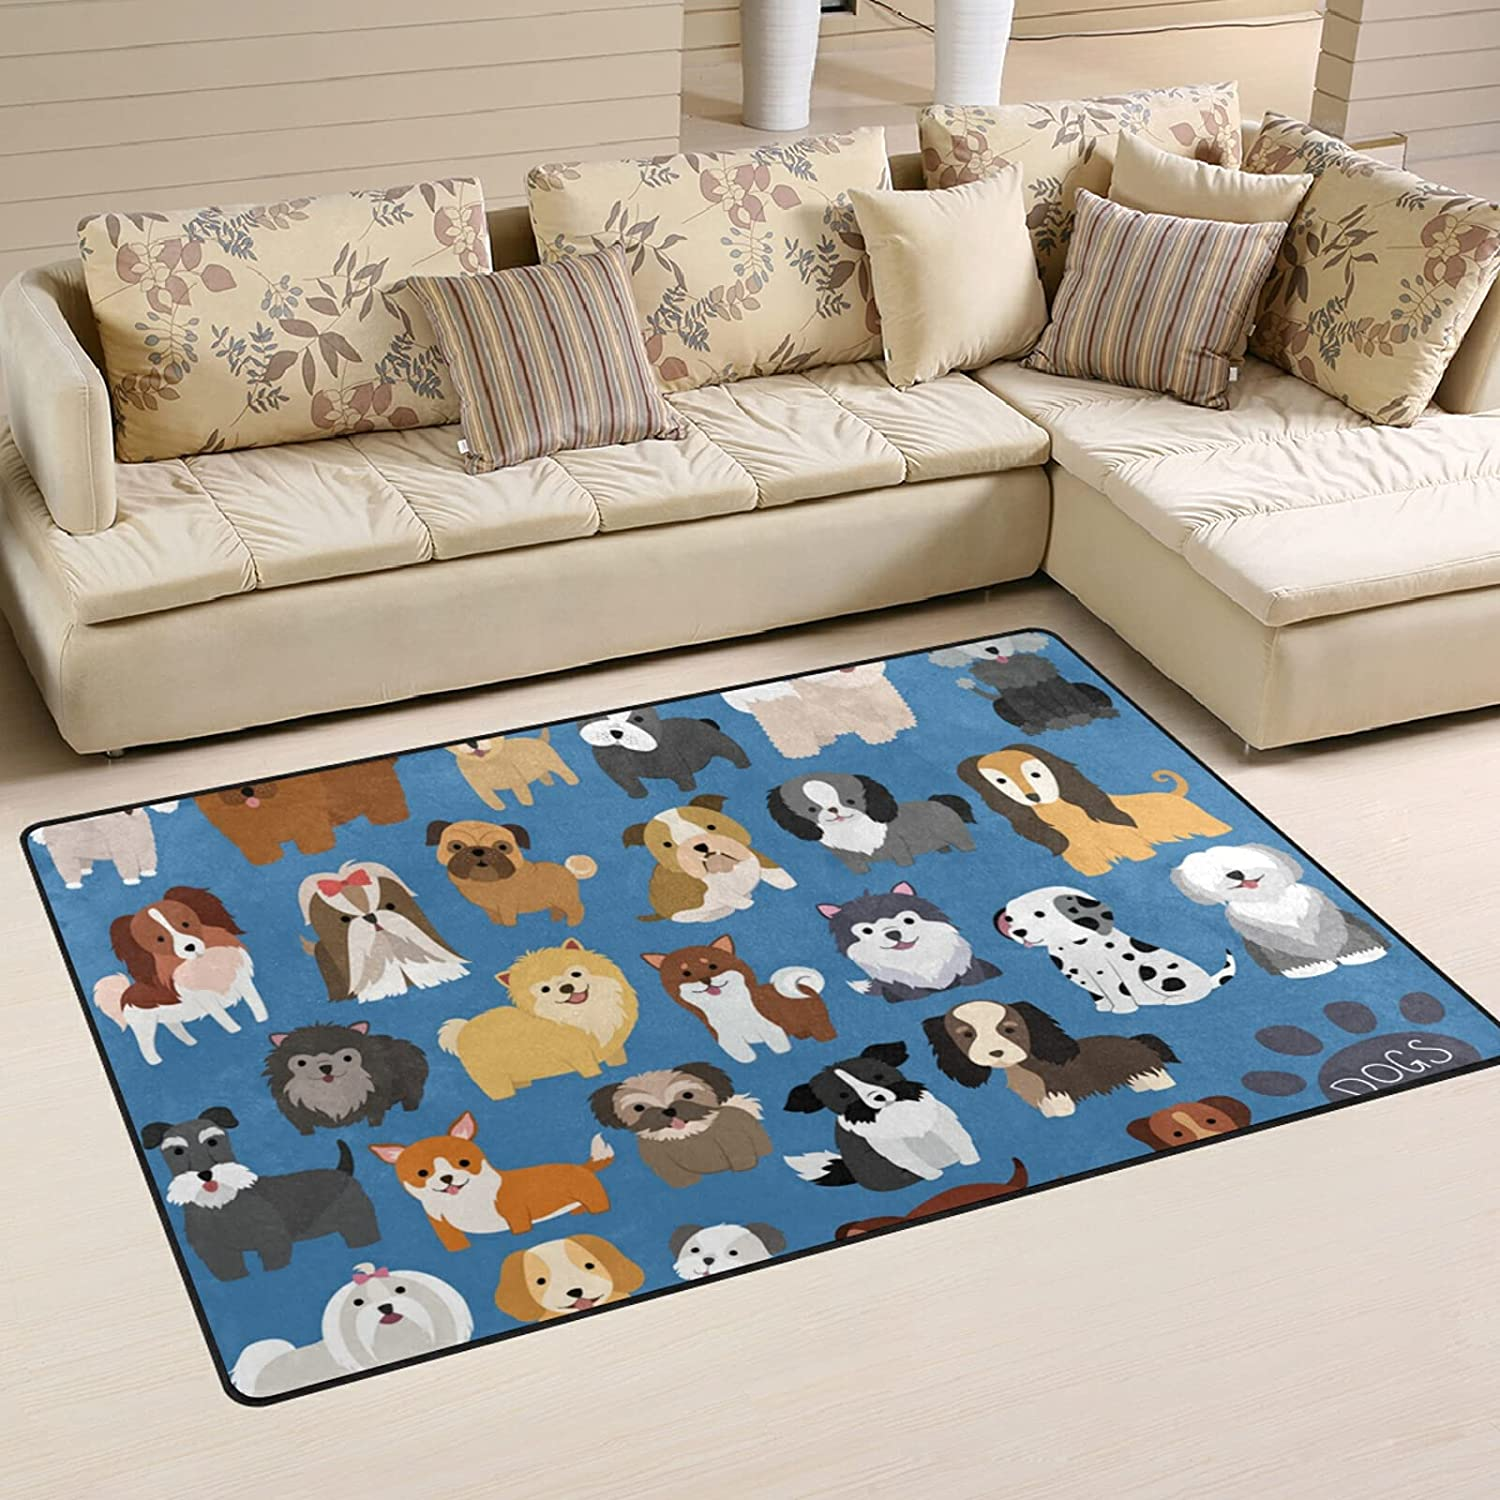 Cute Puppy Dog Large Soft Dallas Mall Area Mat Nursery Rugs Playmat for Rug Max 87% OFF